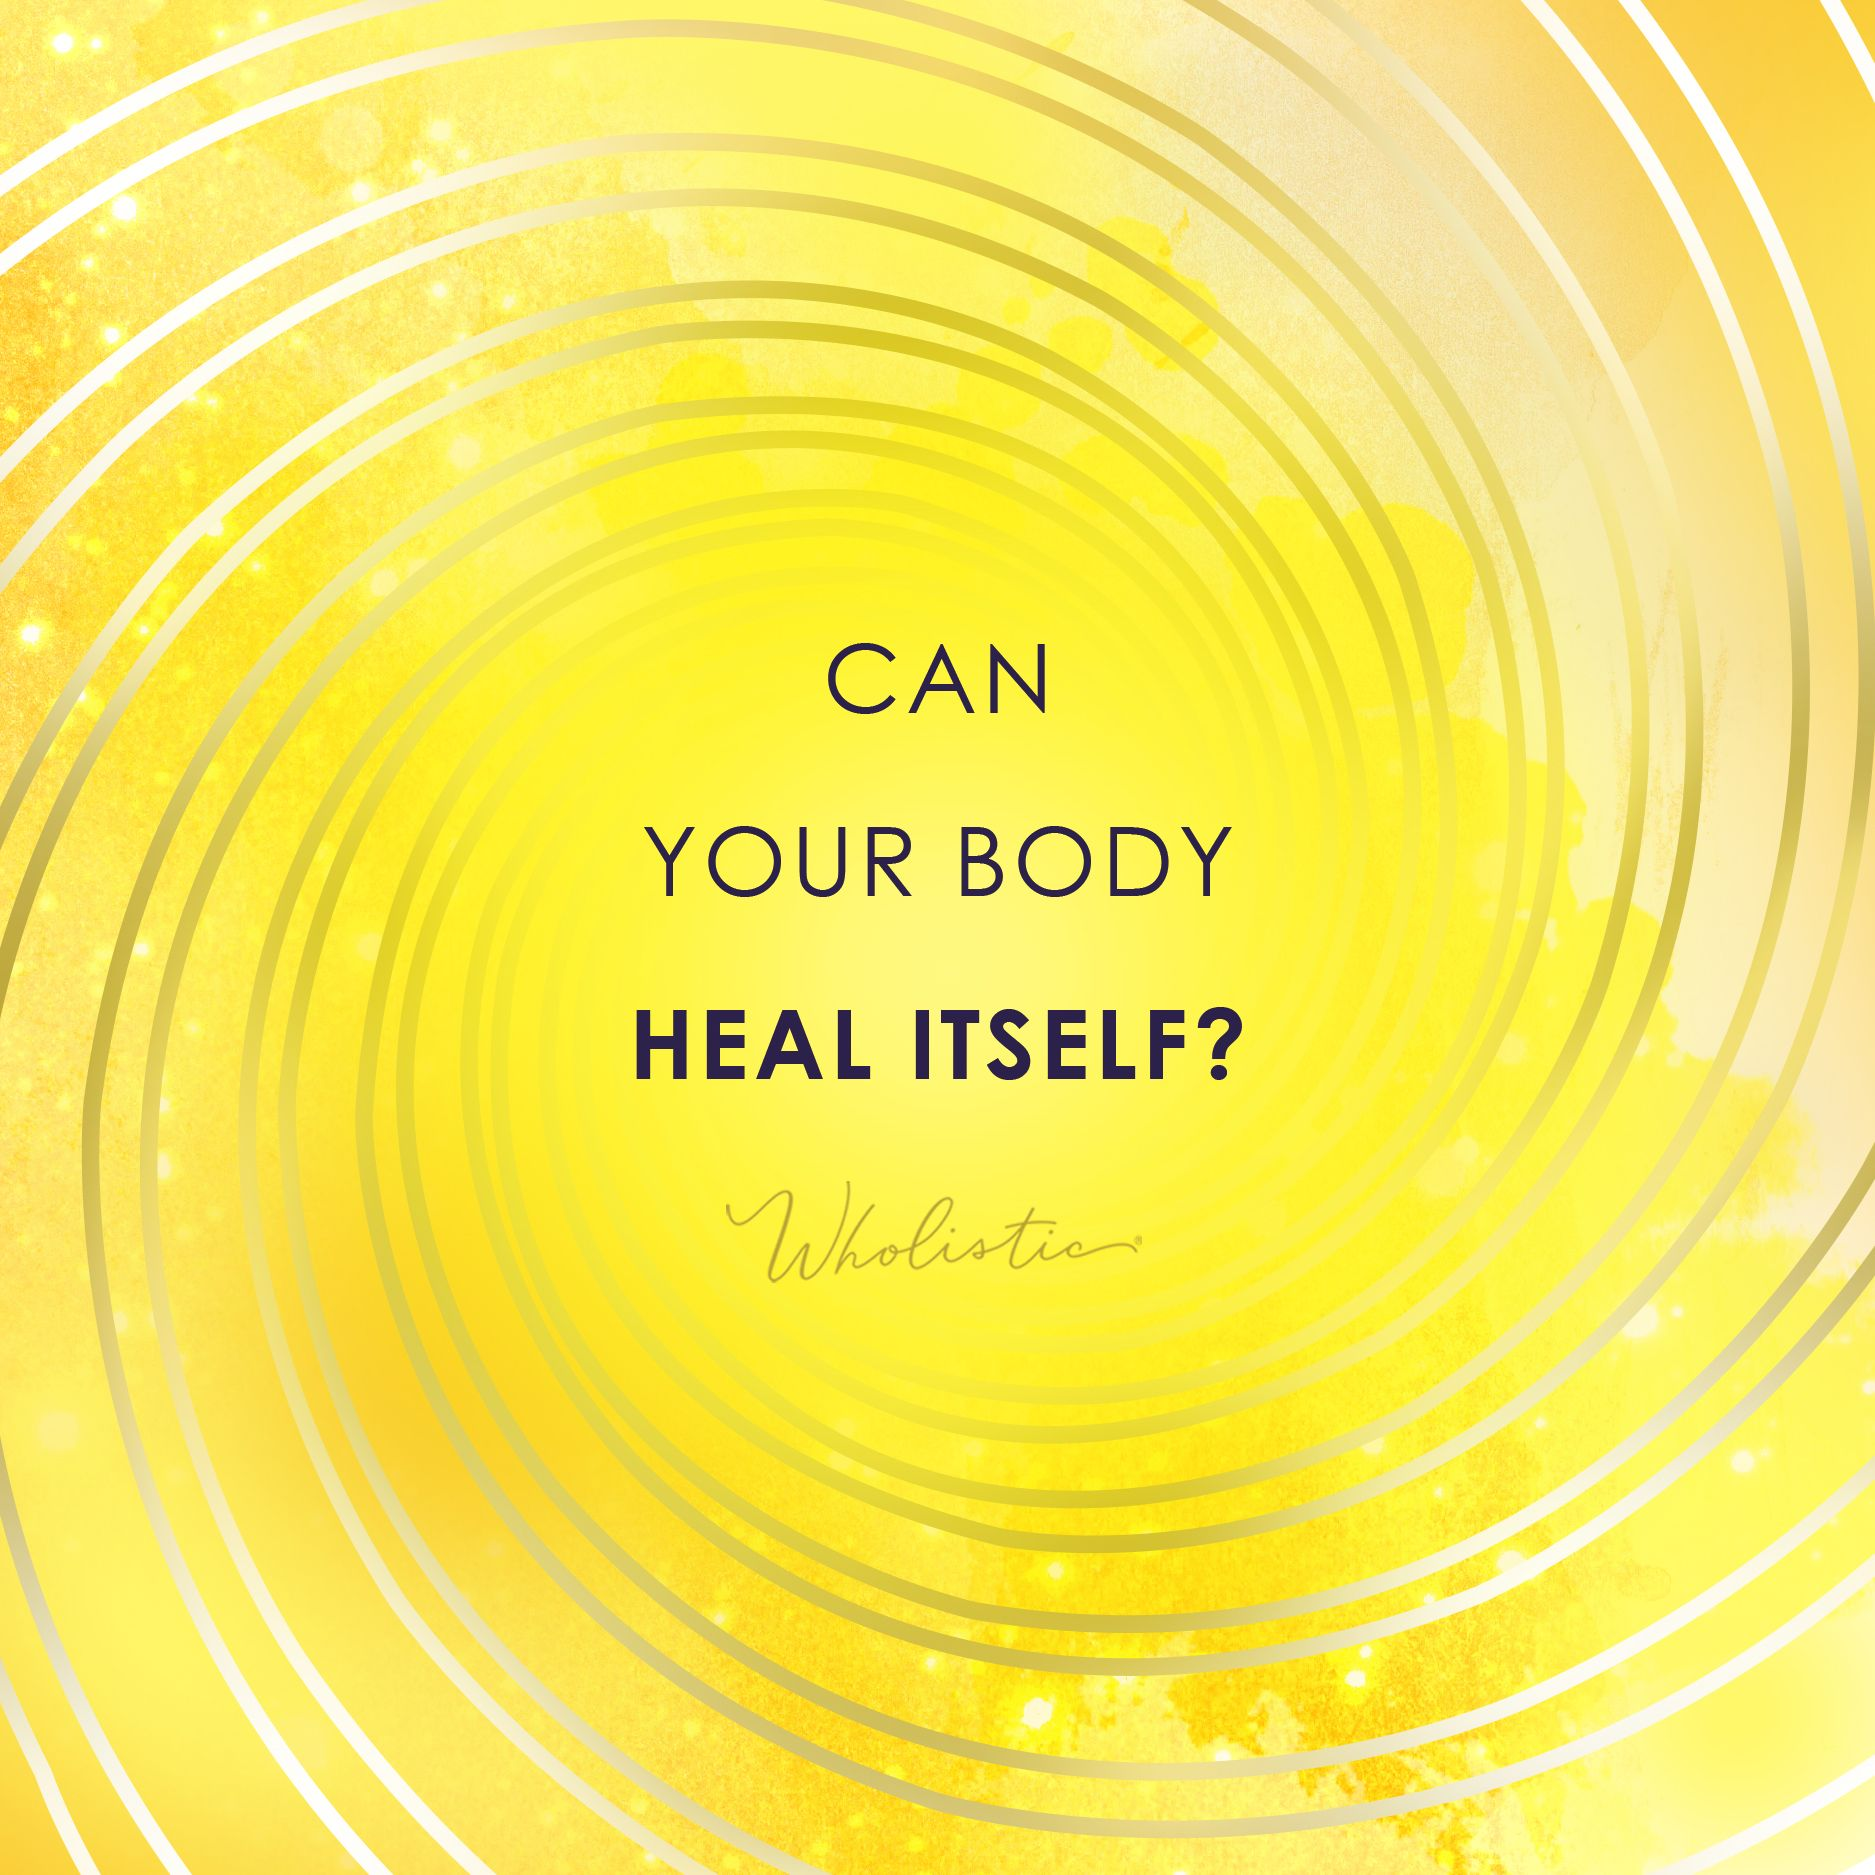 Can Your Body Heal Itself